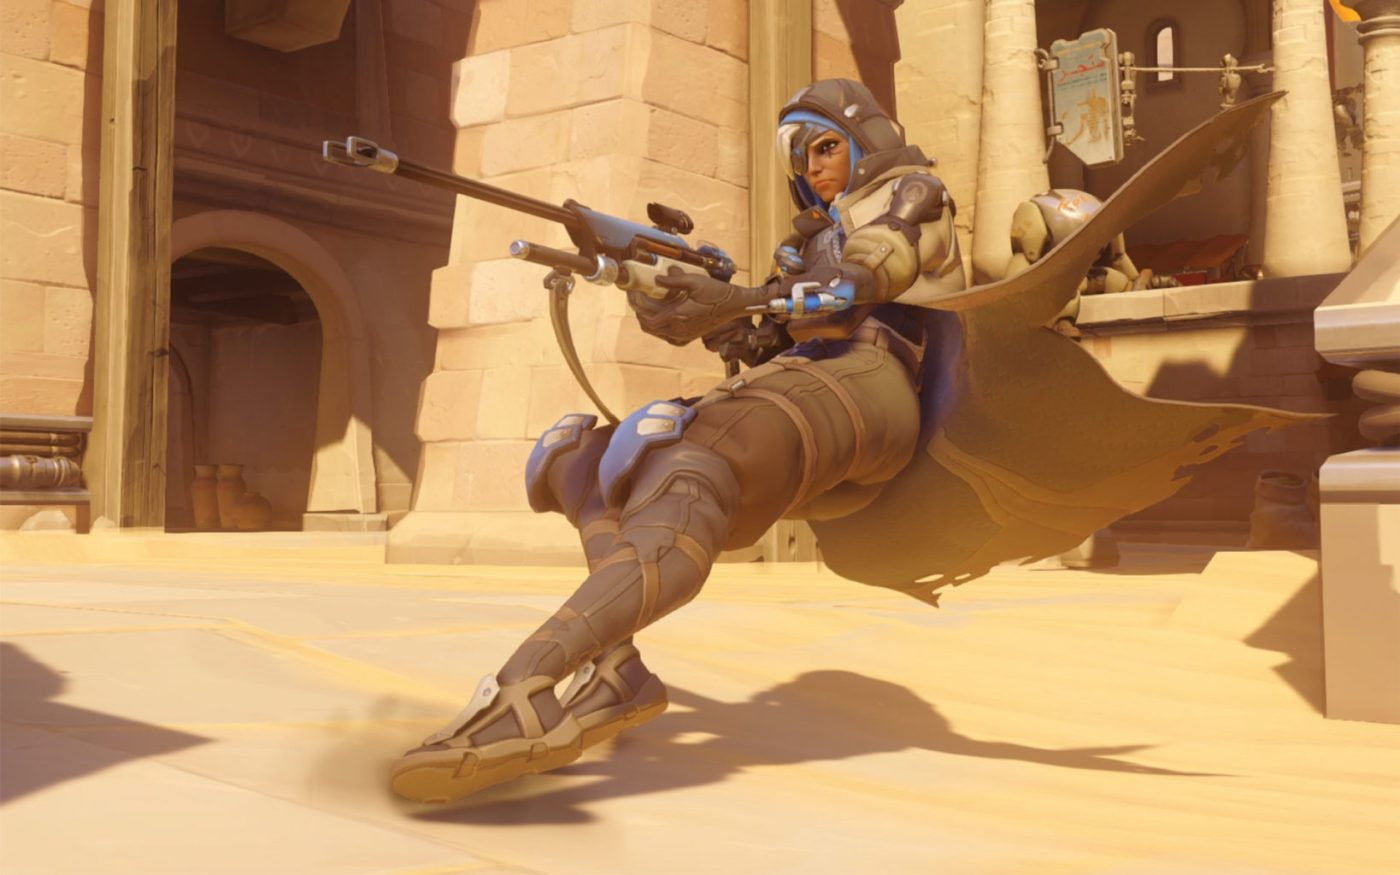 overwatch patch 1.48